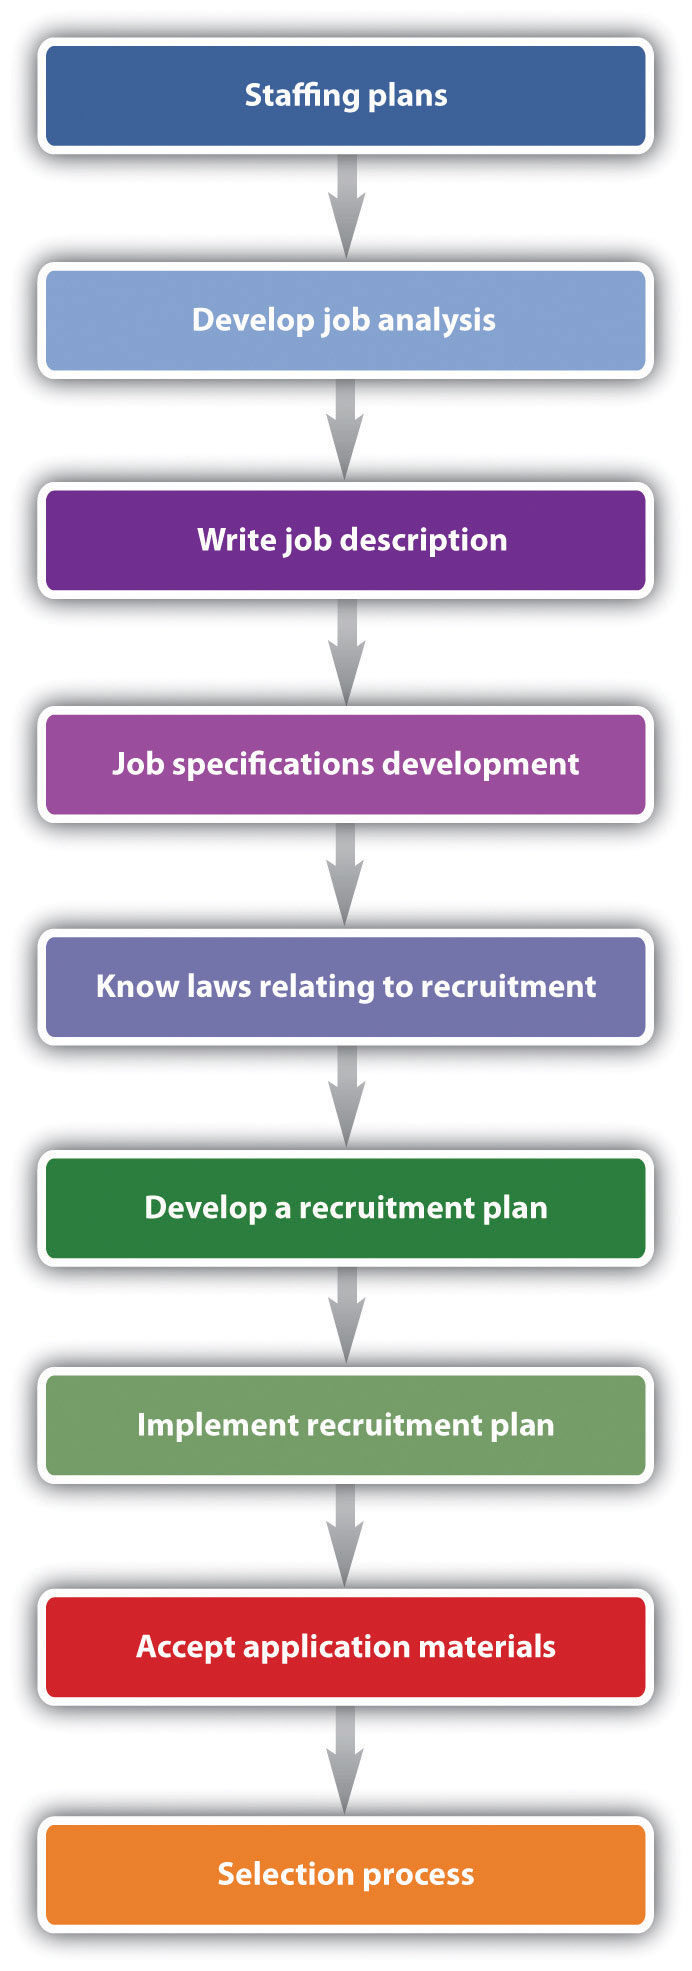 recruitment methods used in an organisation commerce essay You are now reading the second report in the series: selection assessment methods here is the series concept: time and other resources in advertising and recruiting strategies to attract the one reason why more organizations do not use rigorous assessments to select employ.